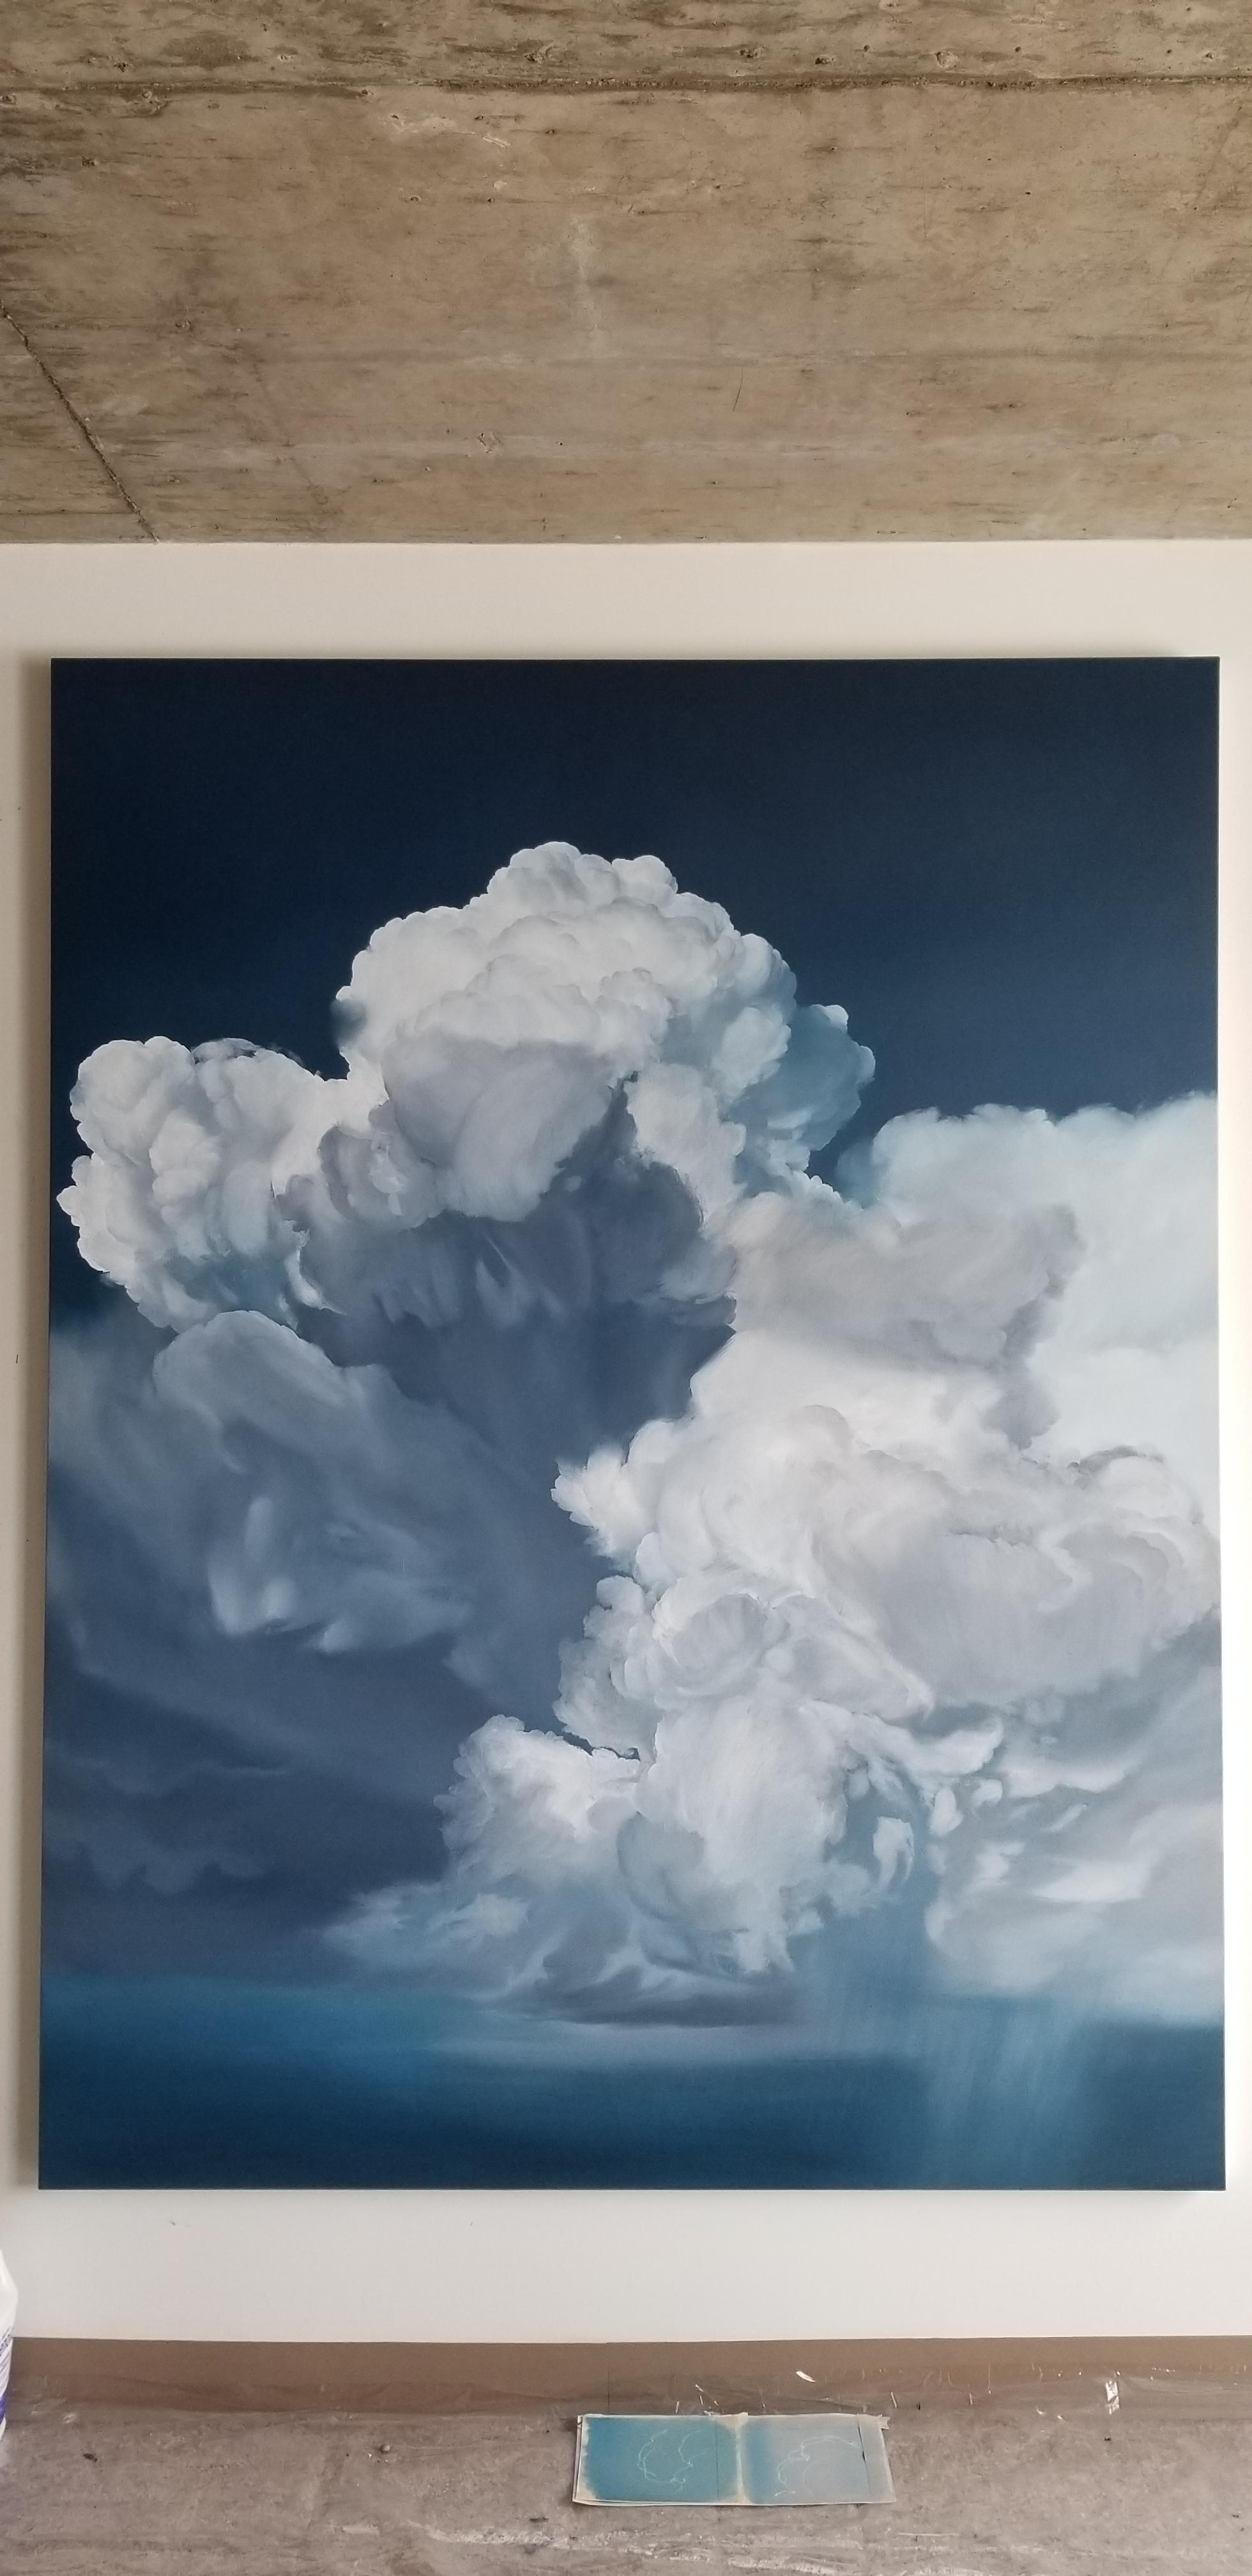 H. 198 cm x L. 152 cm. oil on canvas. 2021.